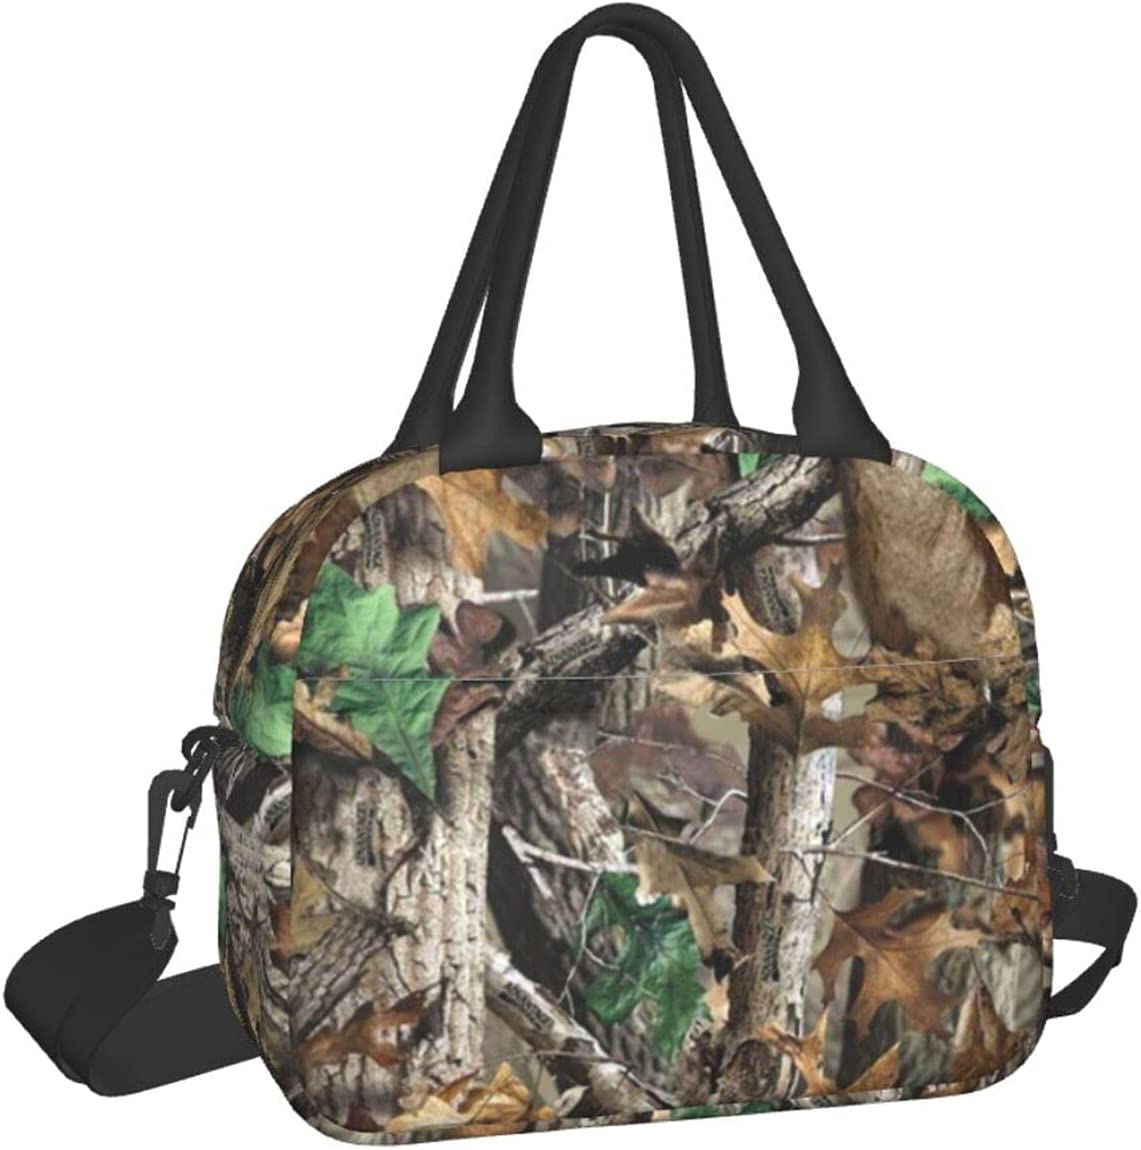 Insulated Lunch Bag For Women Offic Outlet sale Fresno Mall feature Reusable Men - Box